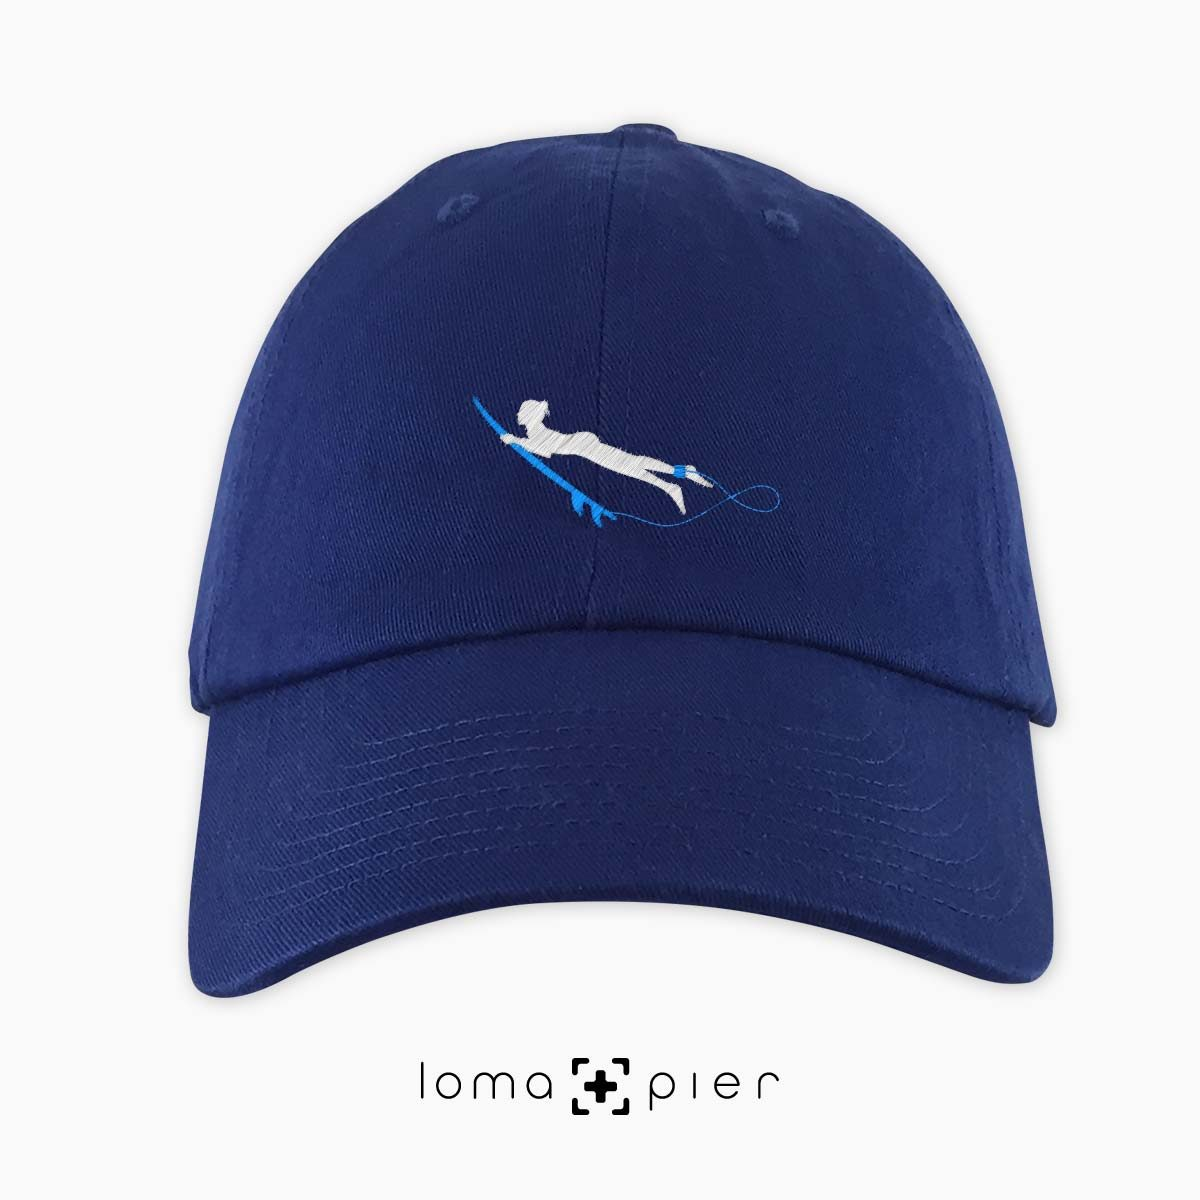 DUCK NAKED SURFER icon embroidered on a royal blue dad hat by loma+pier hat store made in the USA